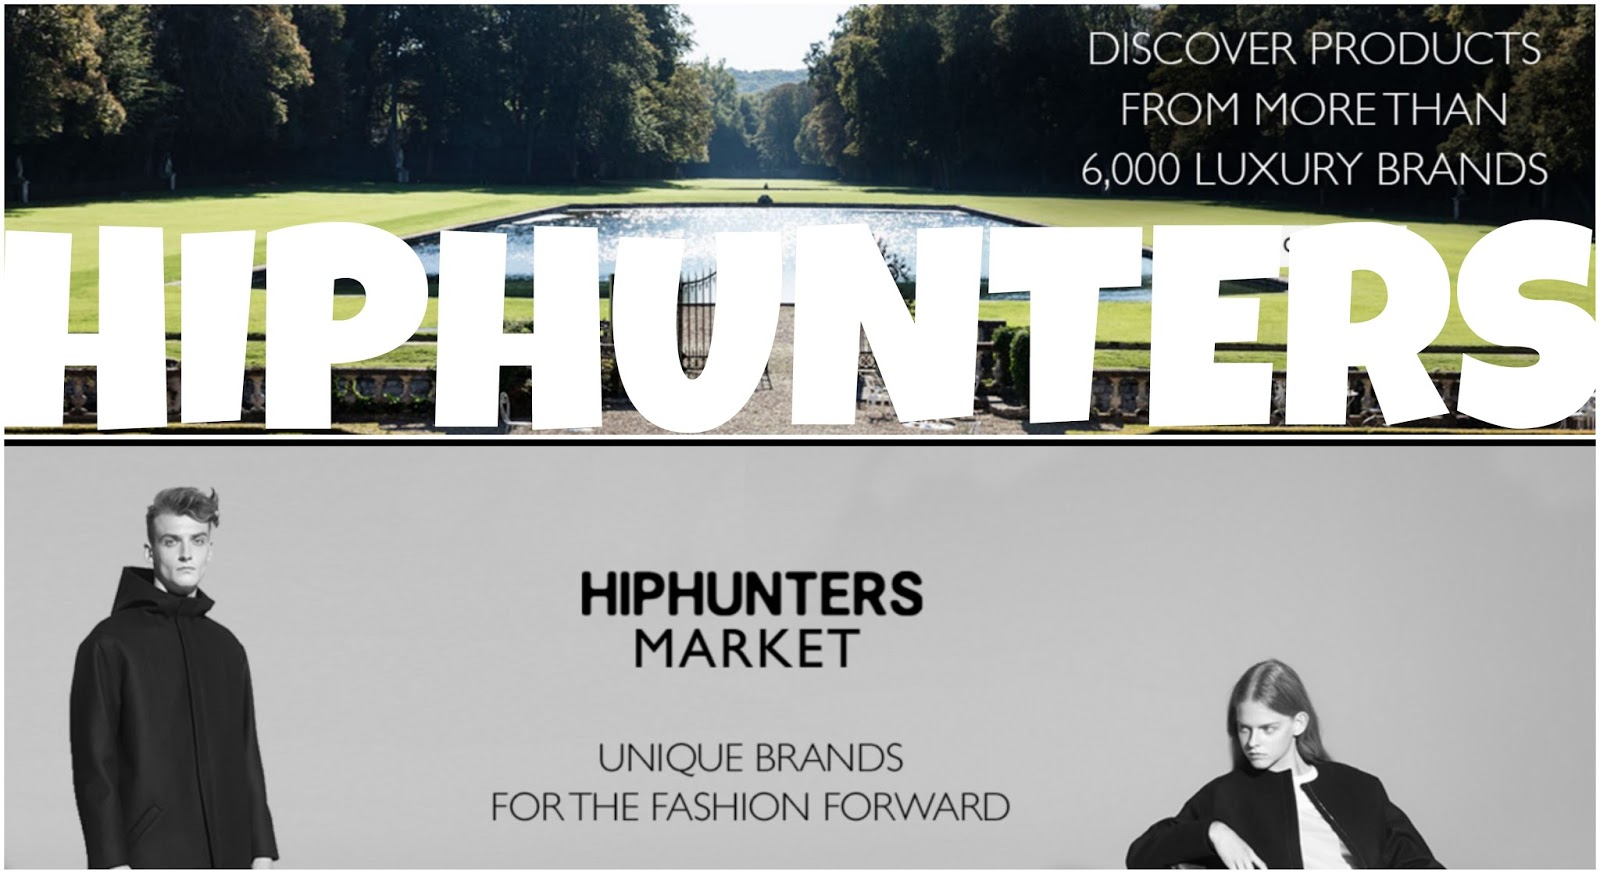 Stay hip and stylish with HipHunters